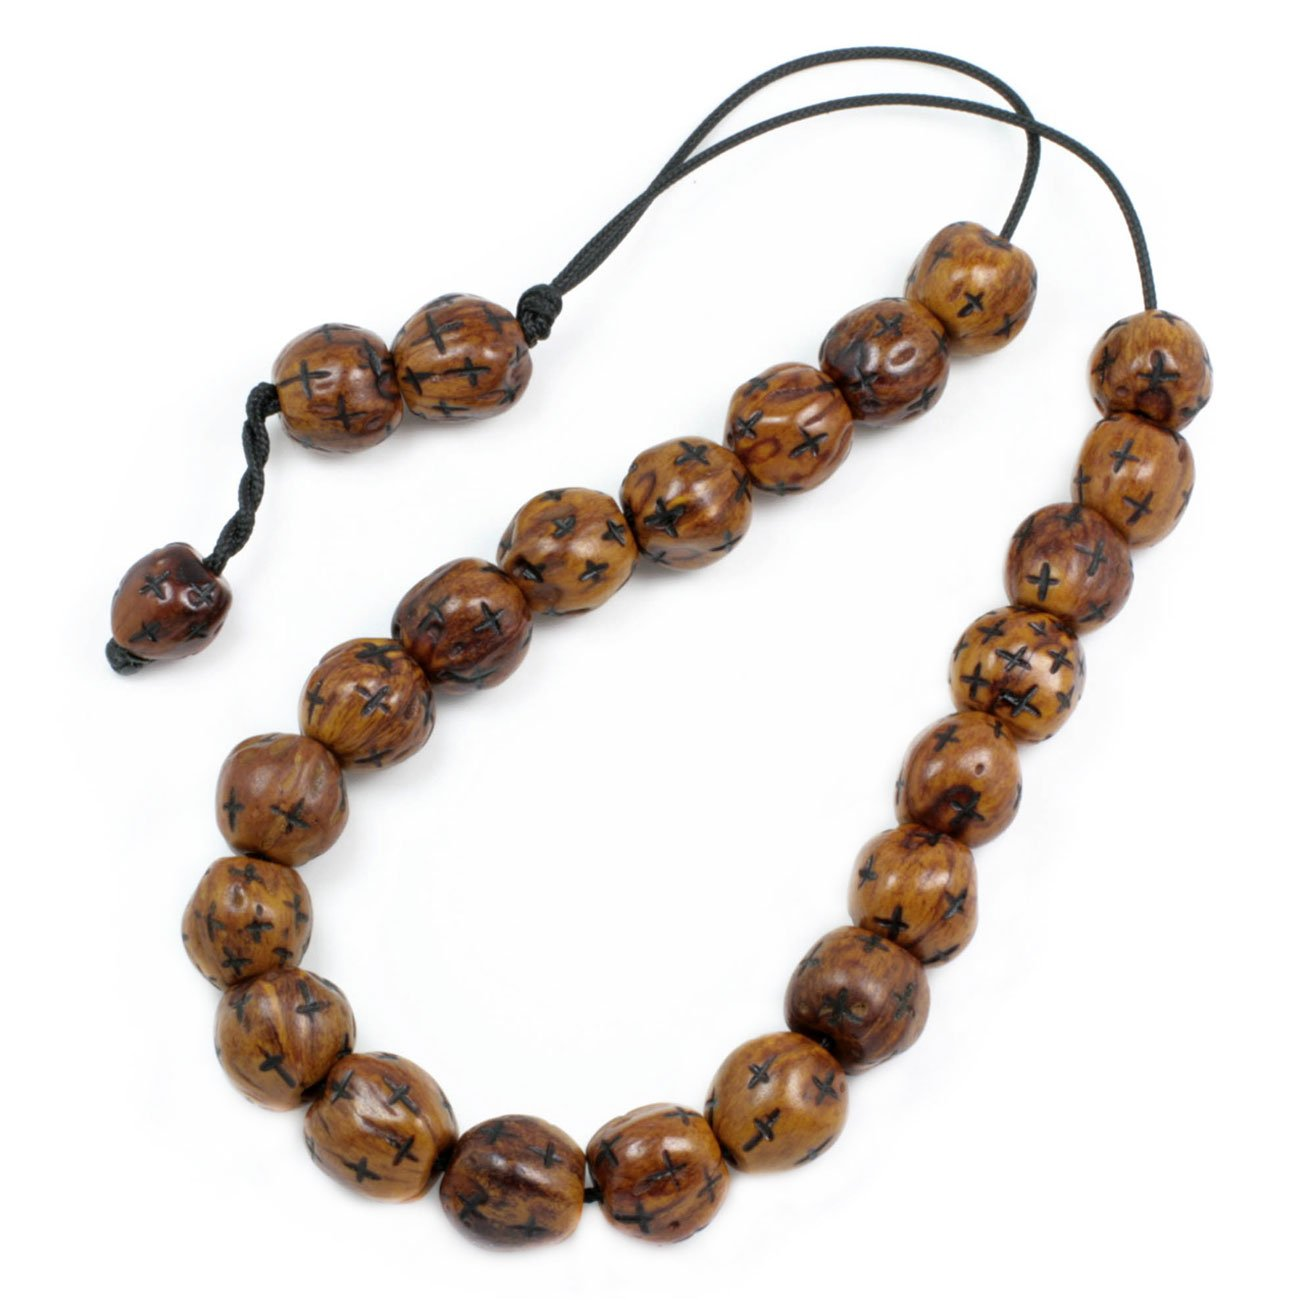 Worry Beads - Komboloi - Scented Nutmeg Seeds with Engraved Crosses - Brown